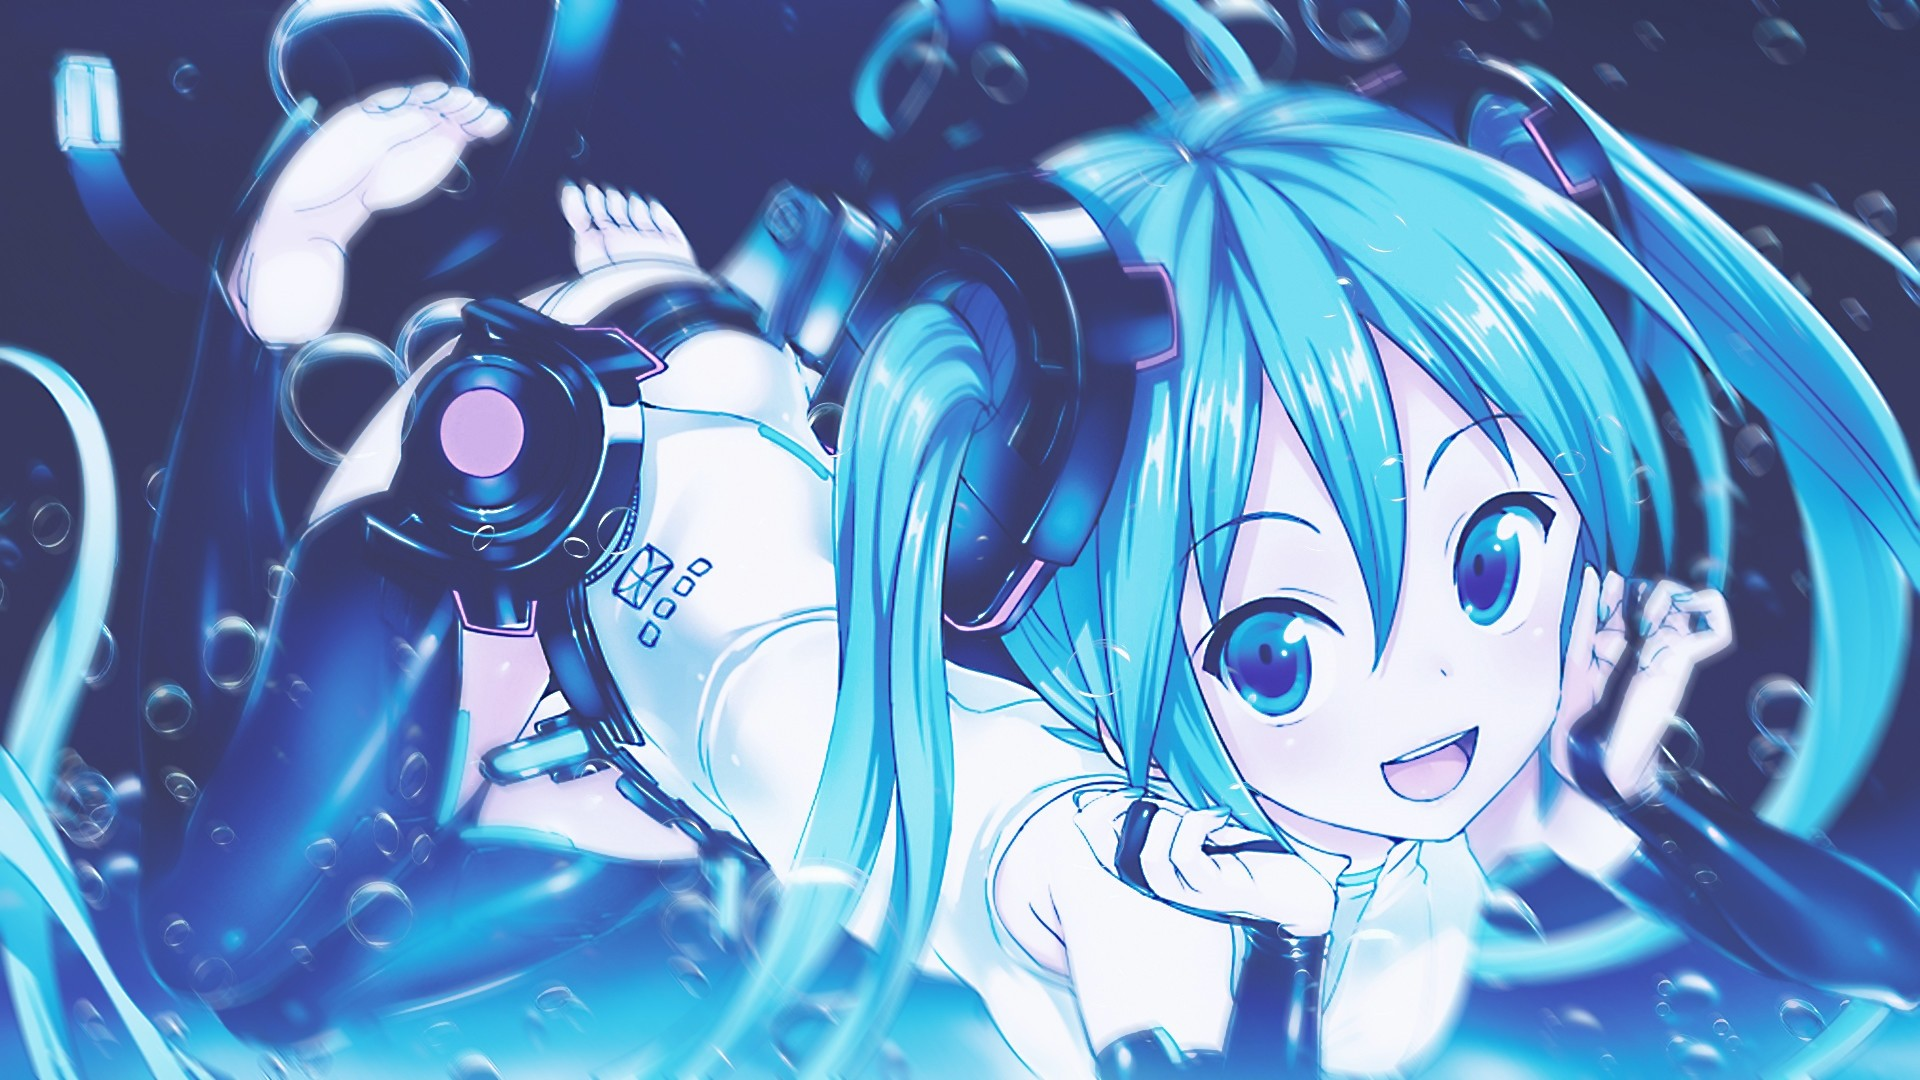 Hatsune Miku Wallpaper image hd